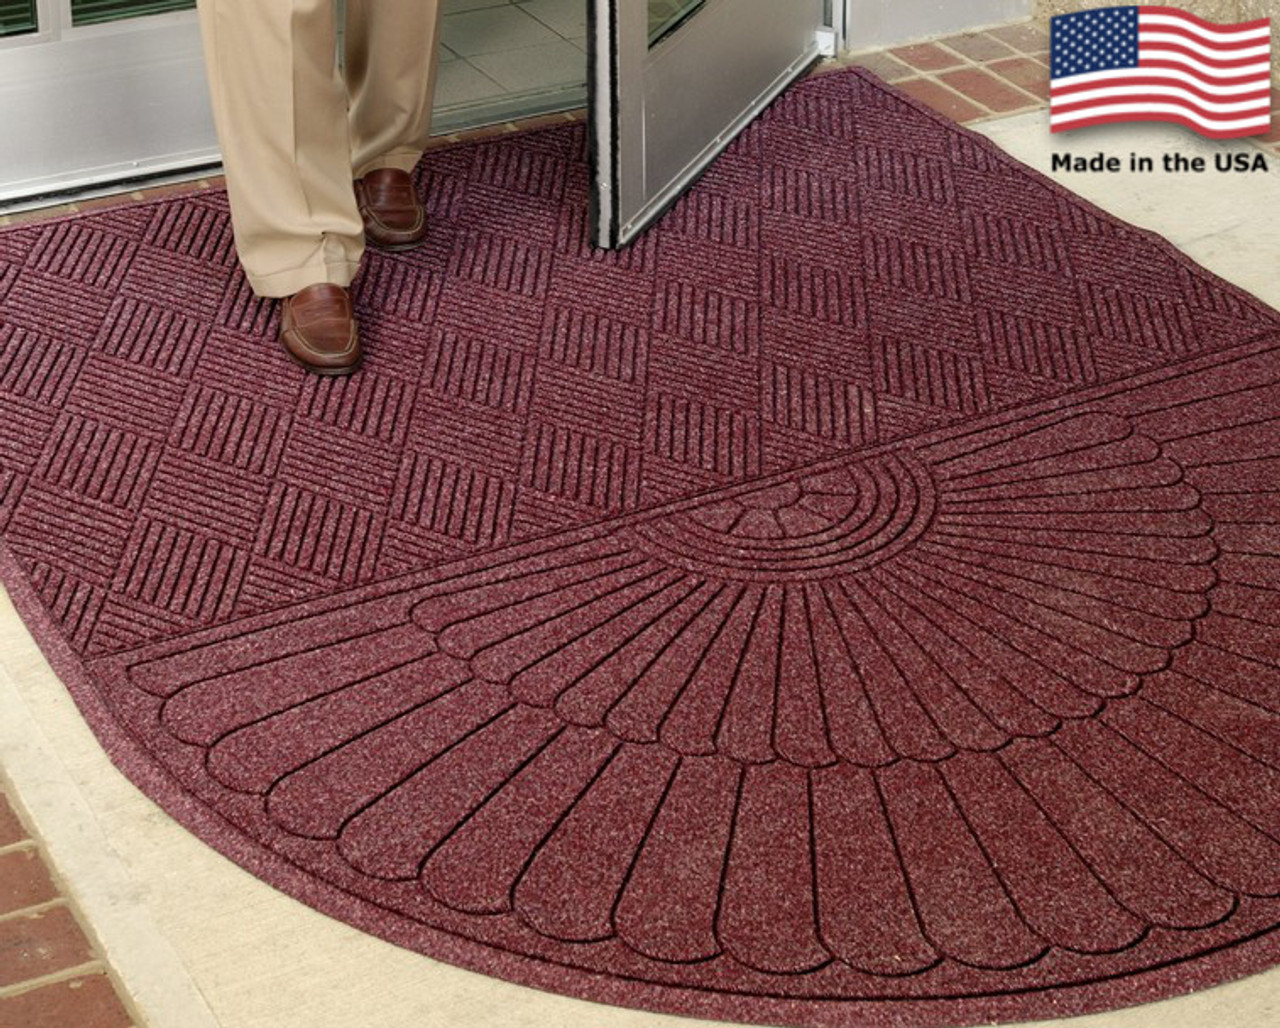 Grand Classic Floor Mats Give any Floor that Luxurious Look!